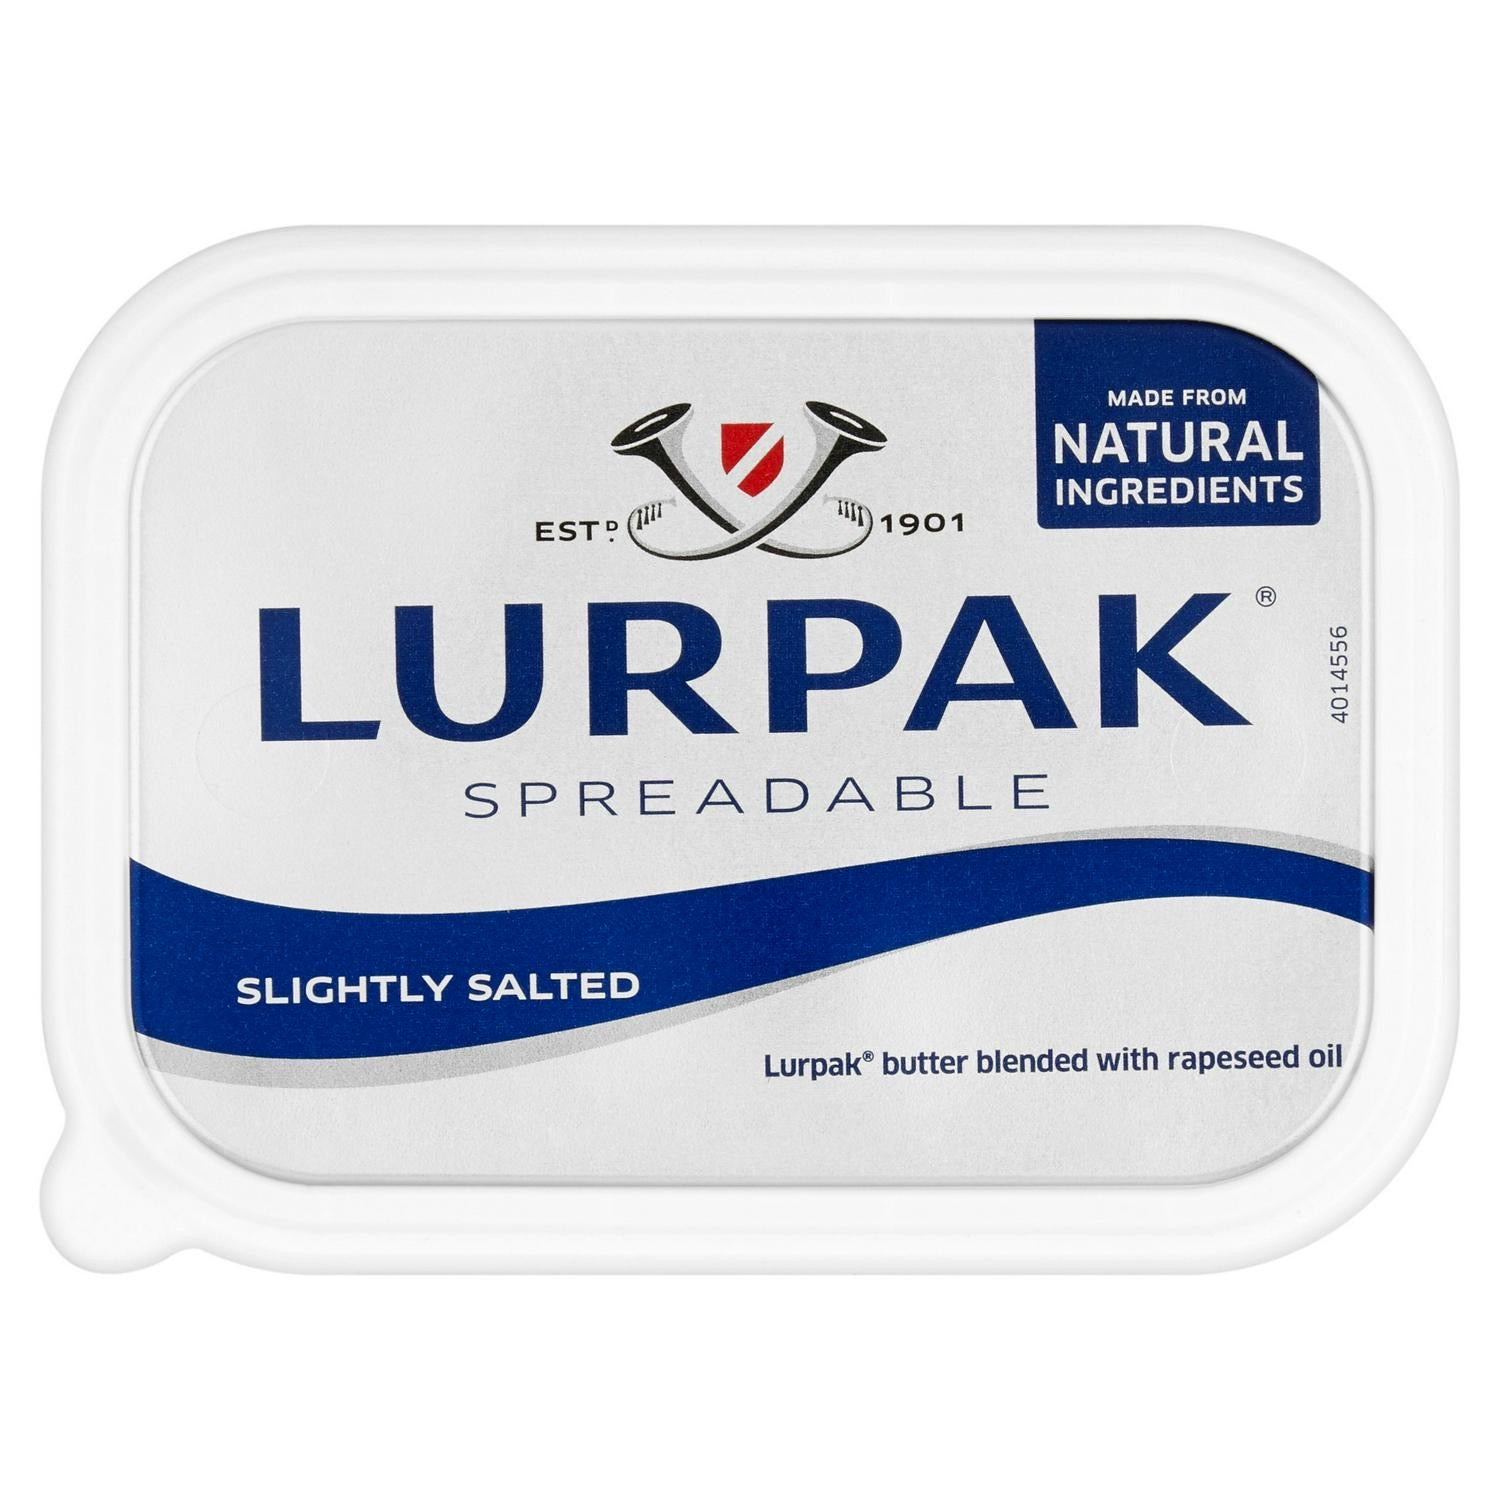 Lightly Salted Spreadable, Lurpak (250g)